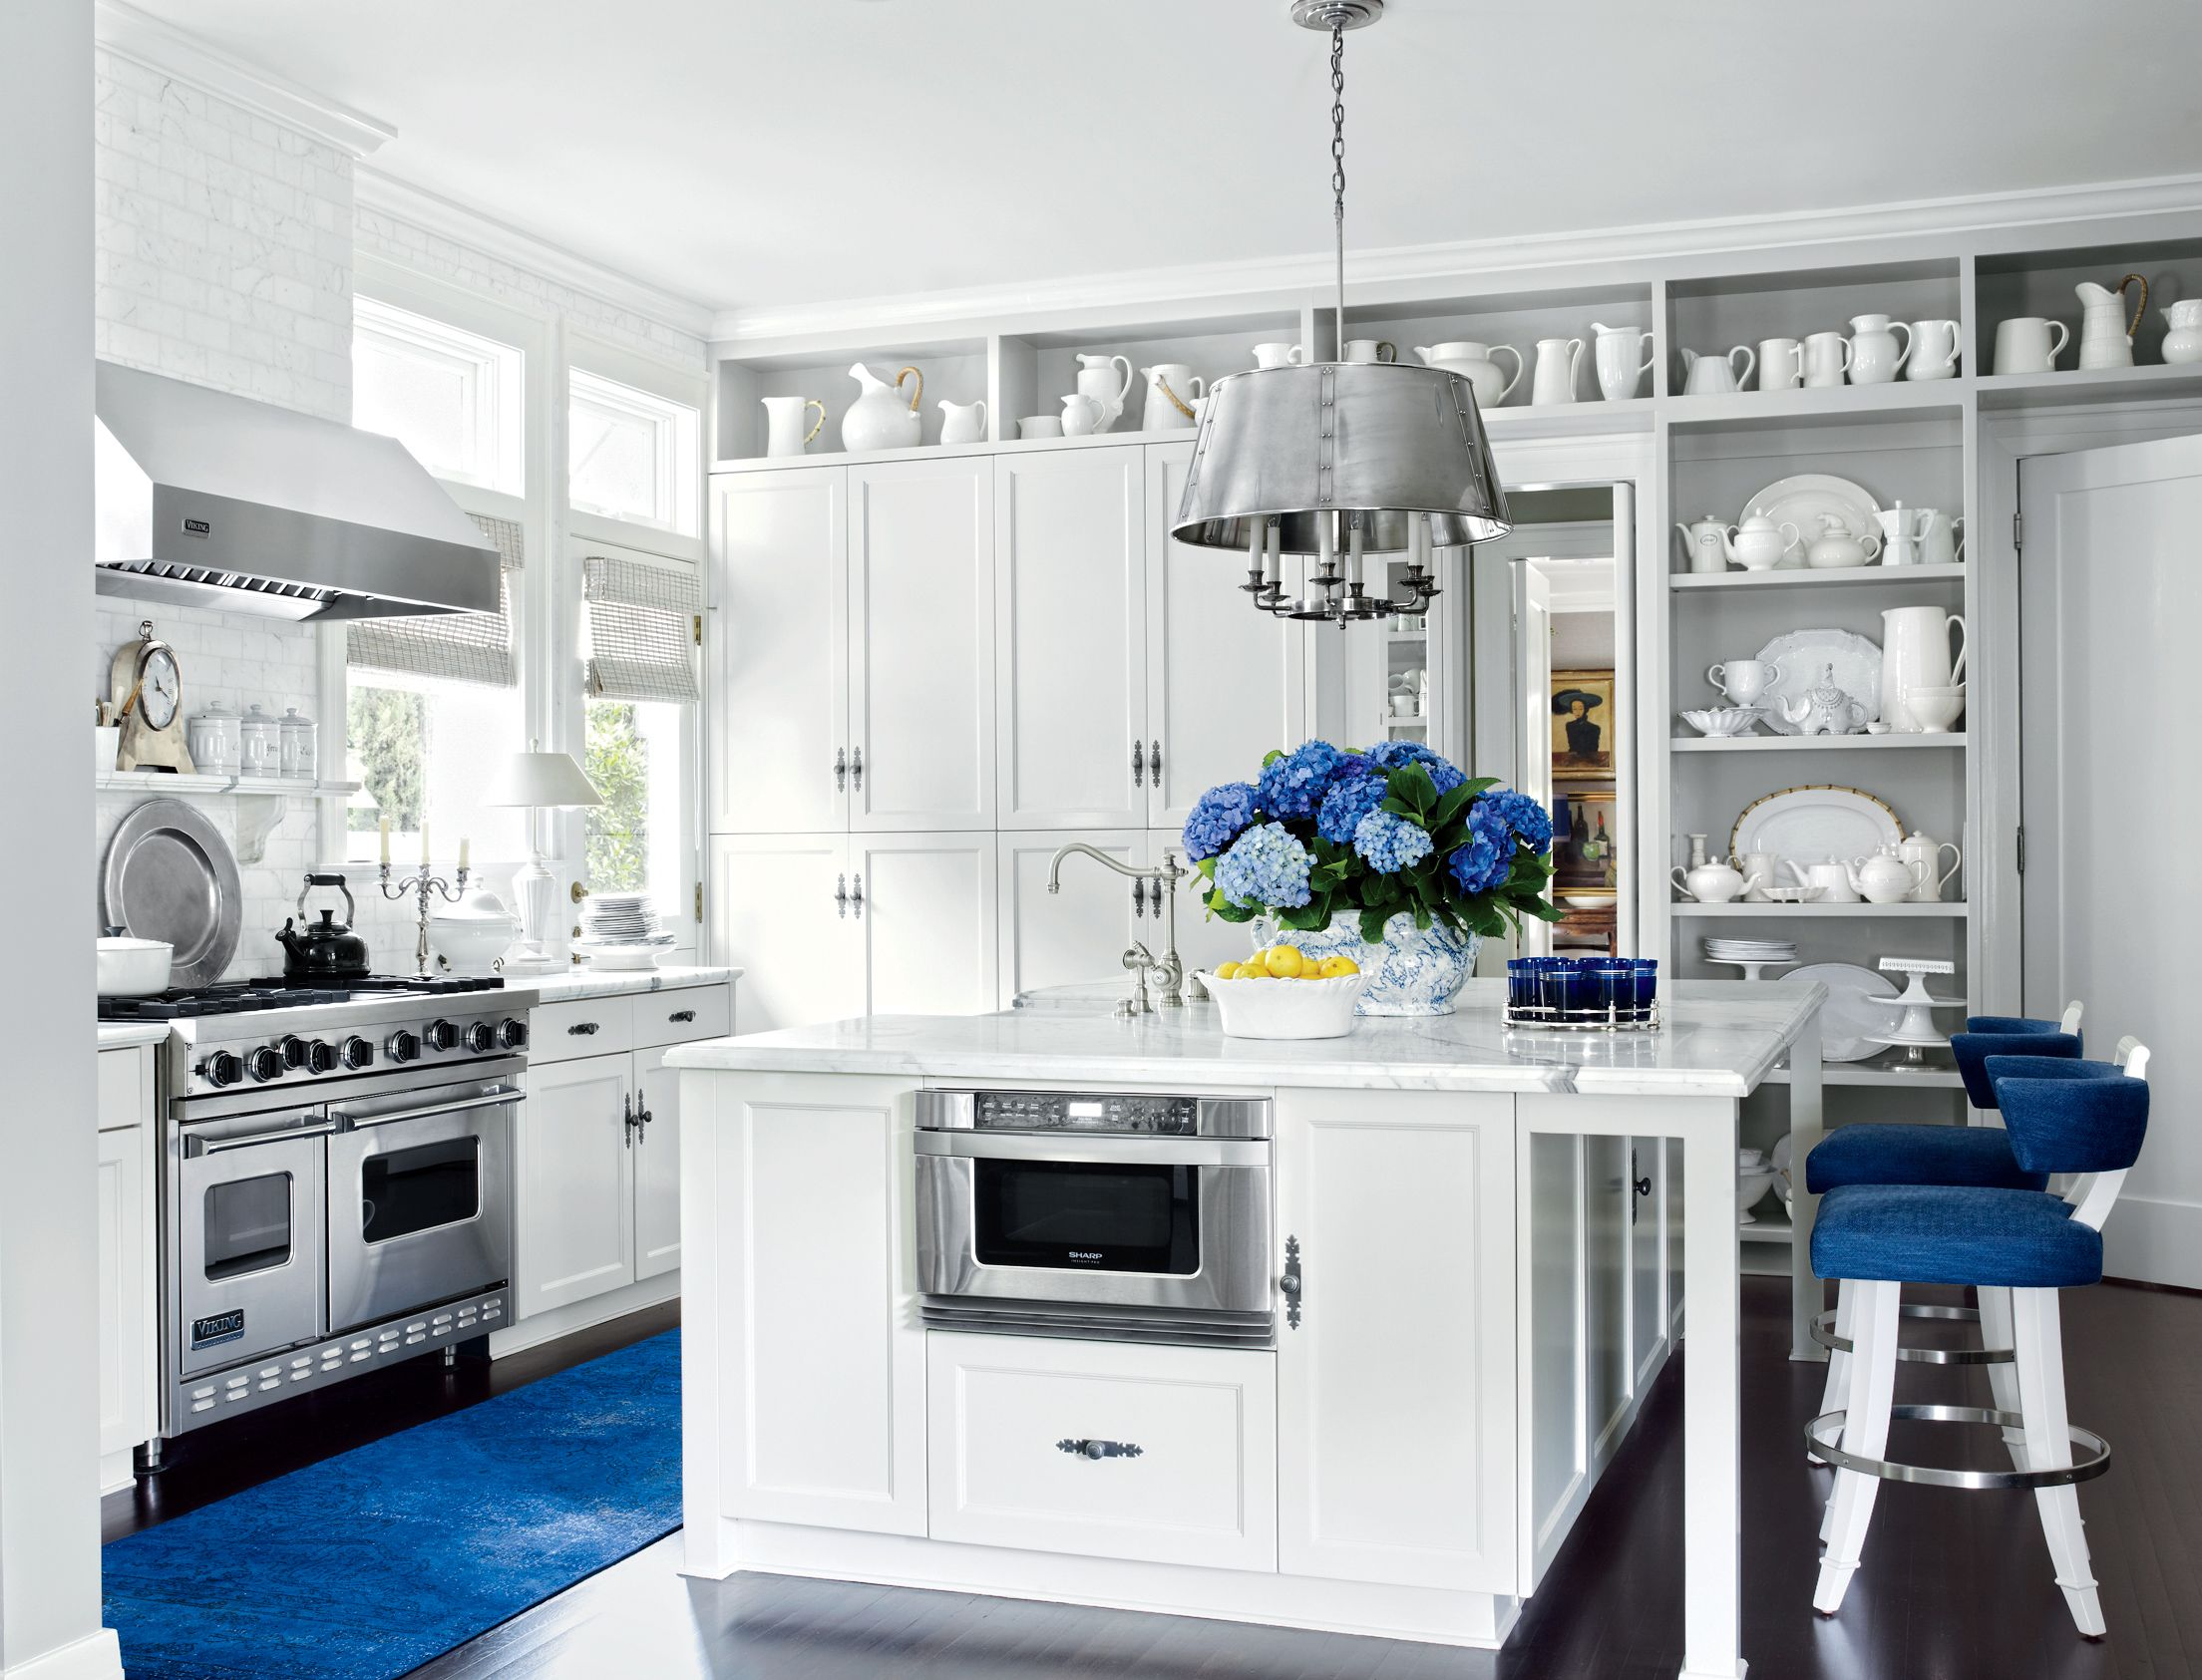 soft grey kitchen with fun pops of bold blue architectural